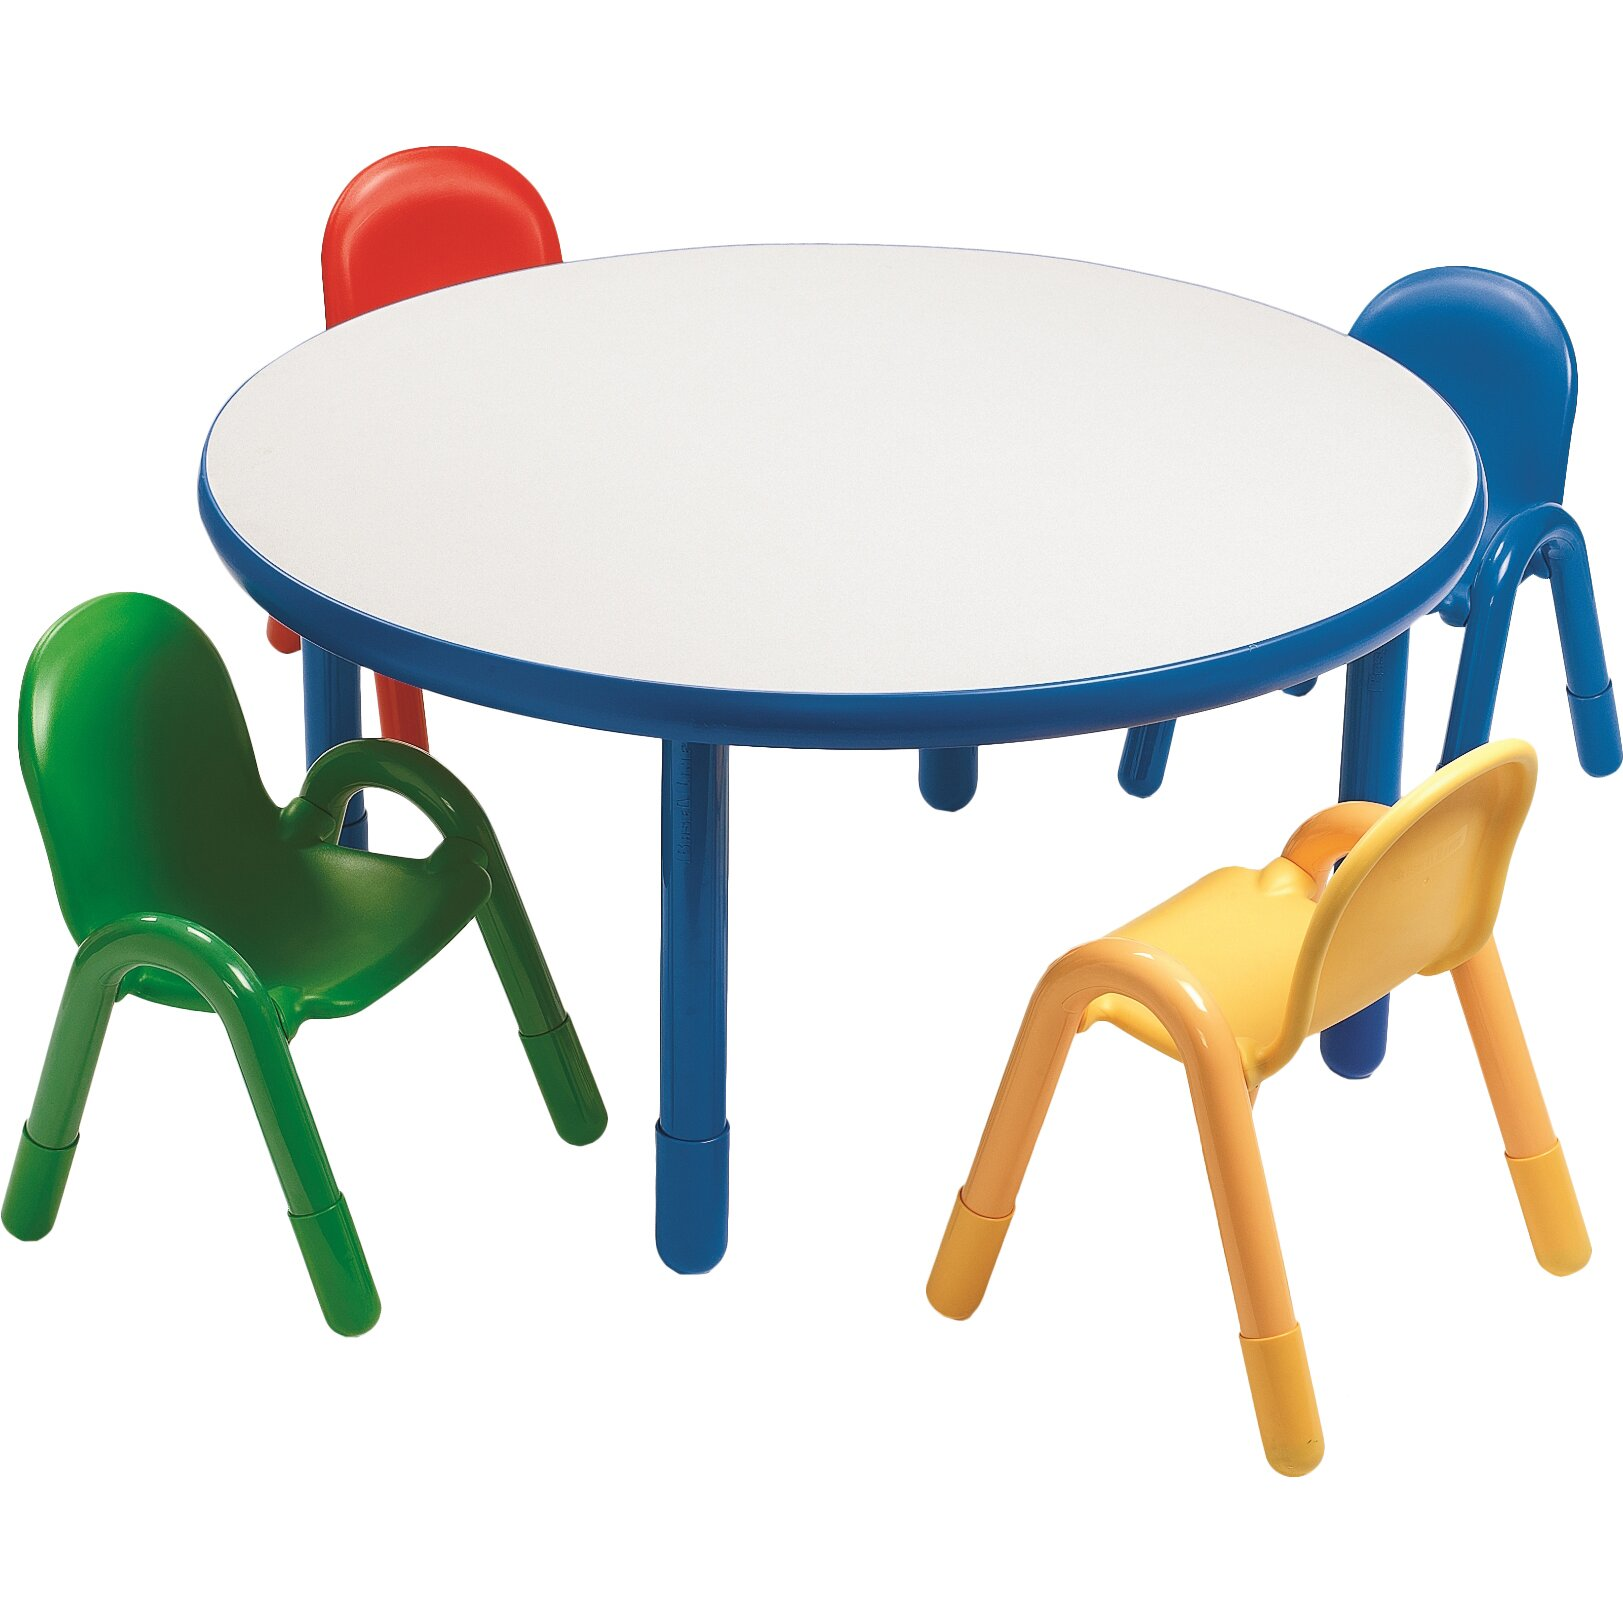 angeles round baseline preschool table and chair set in royal blue reviews wayfair. Black Bedroom Furniture Sets. Home Design Ideas